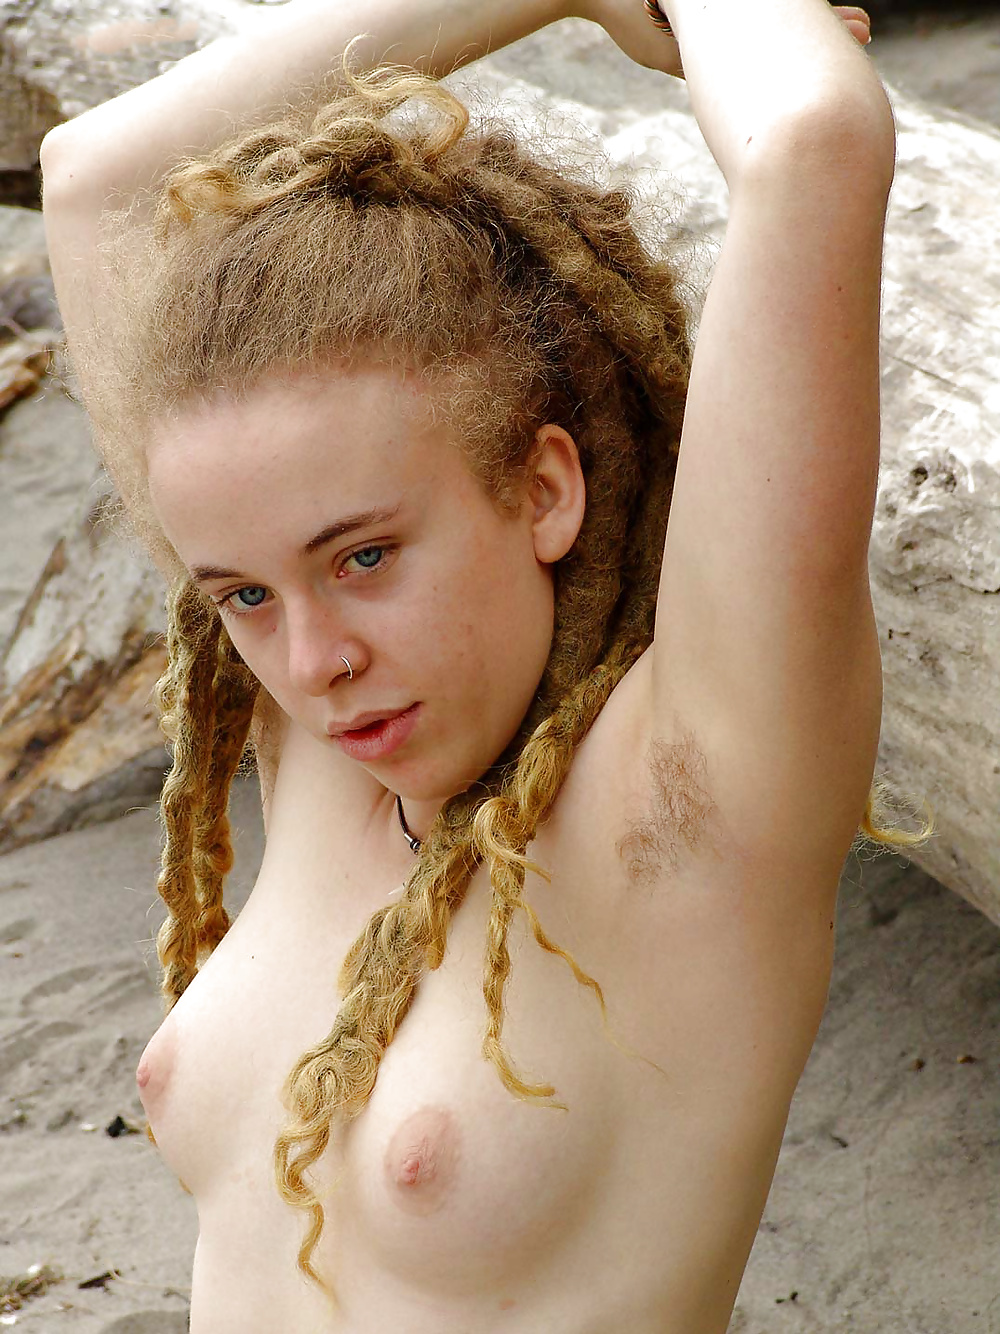 Girl with dreads porn — img 9